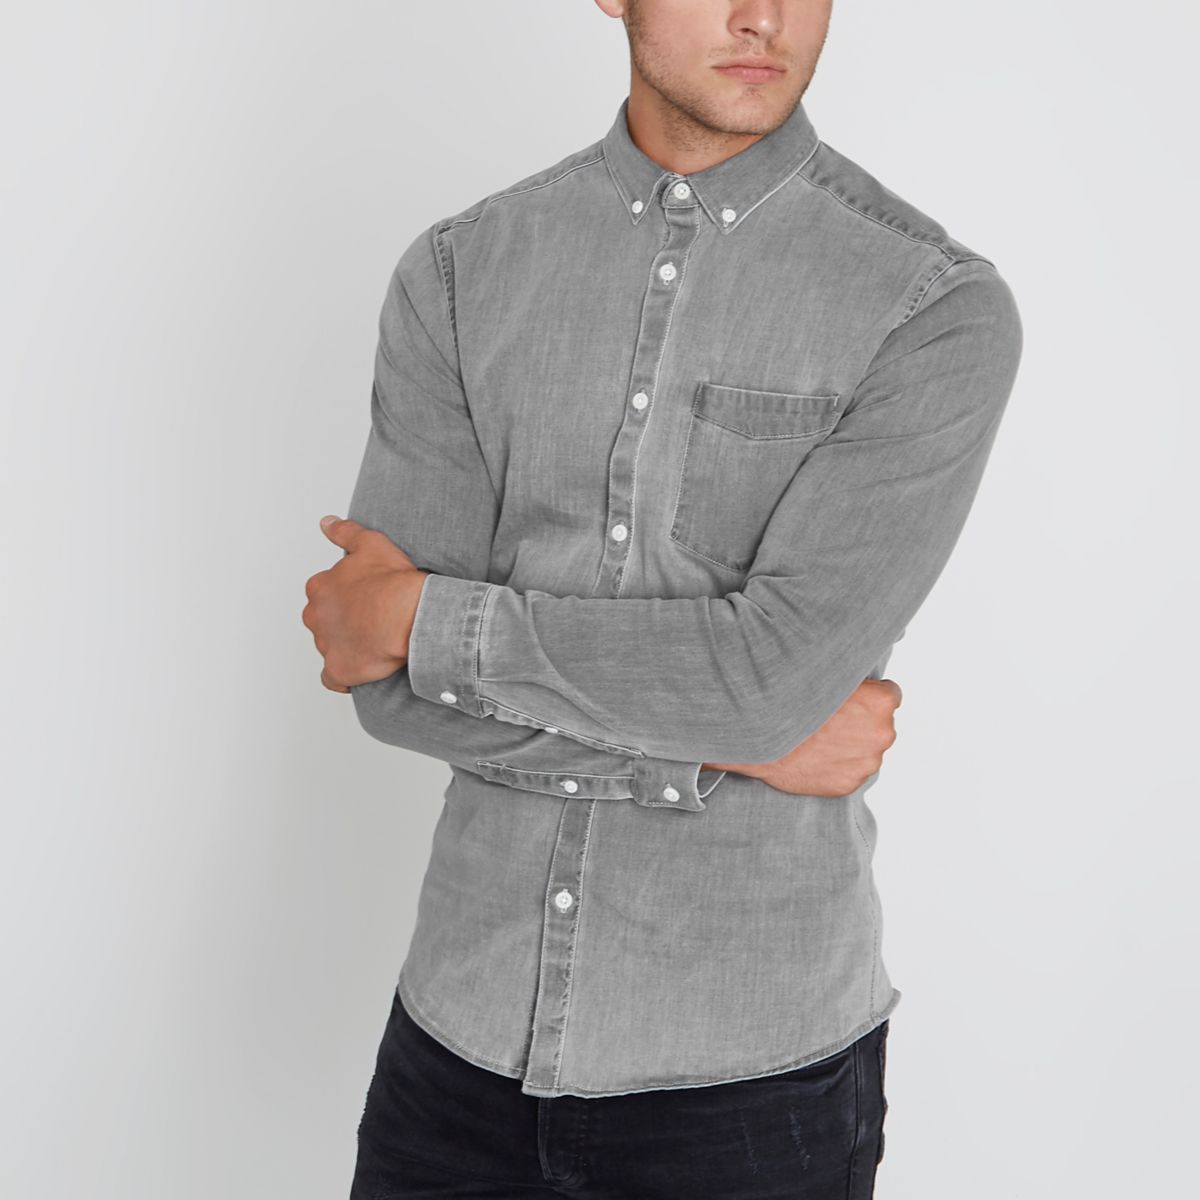 Washed Grey Muscle Fit Denim Shirt by River Island